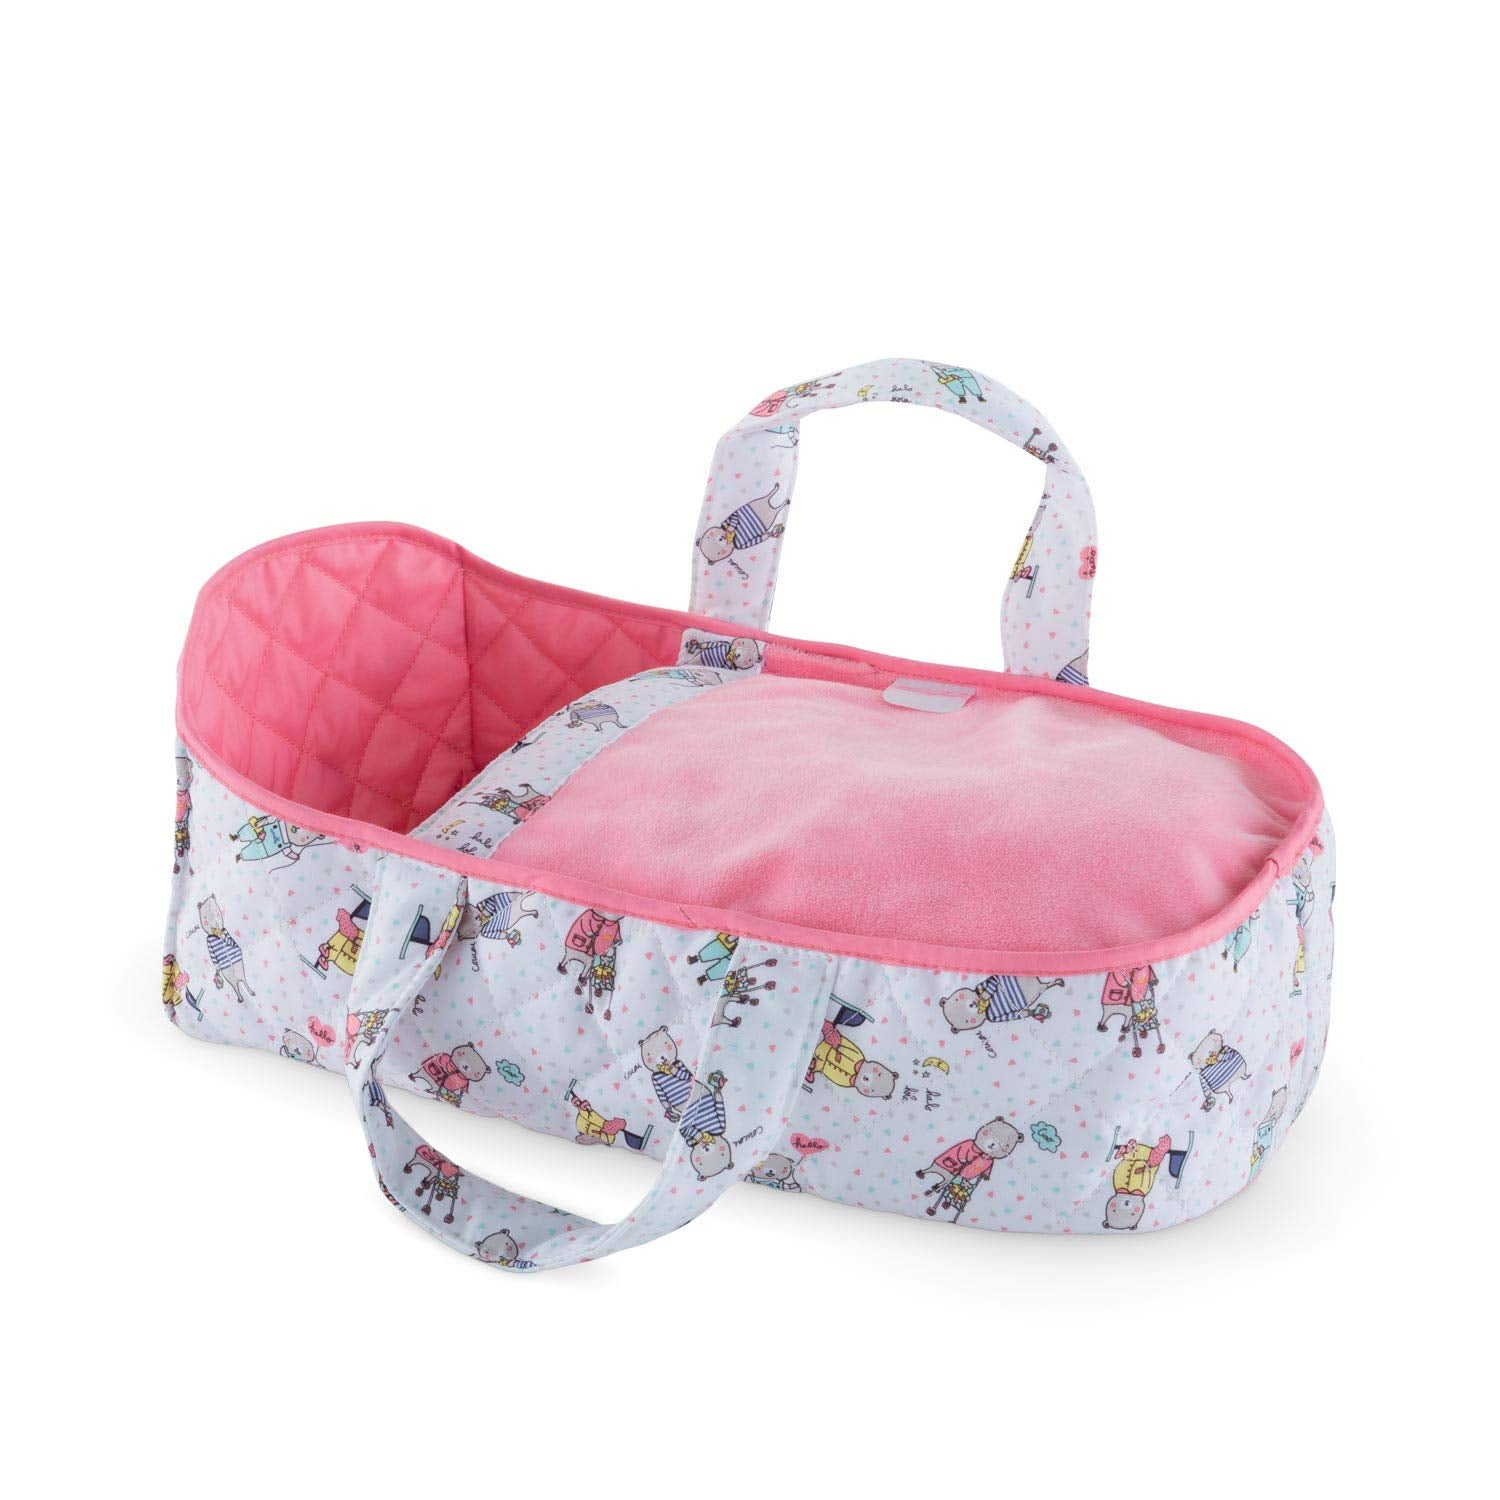 Corolle Mon Premier Poupon Carry Bed Toy Baby Doll